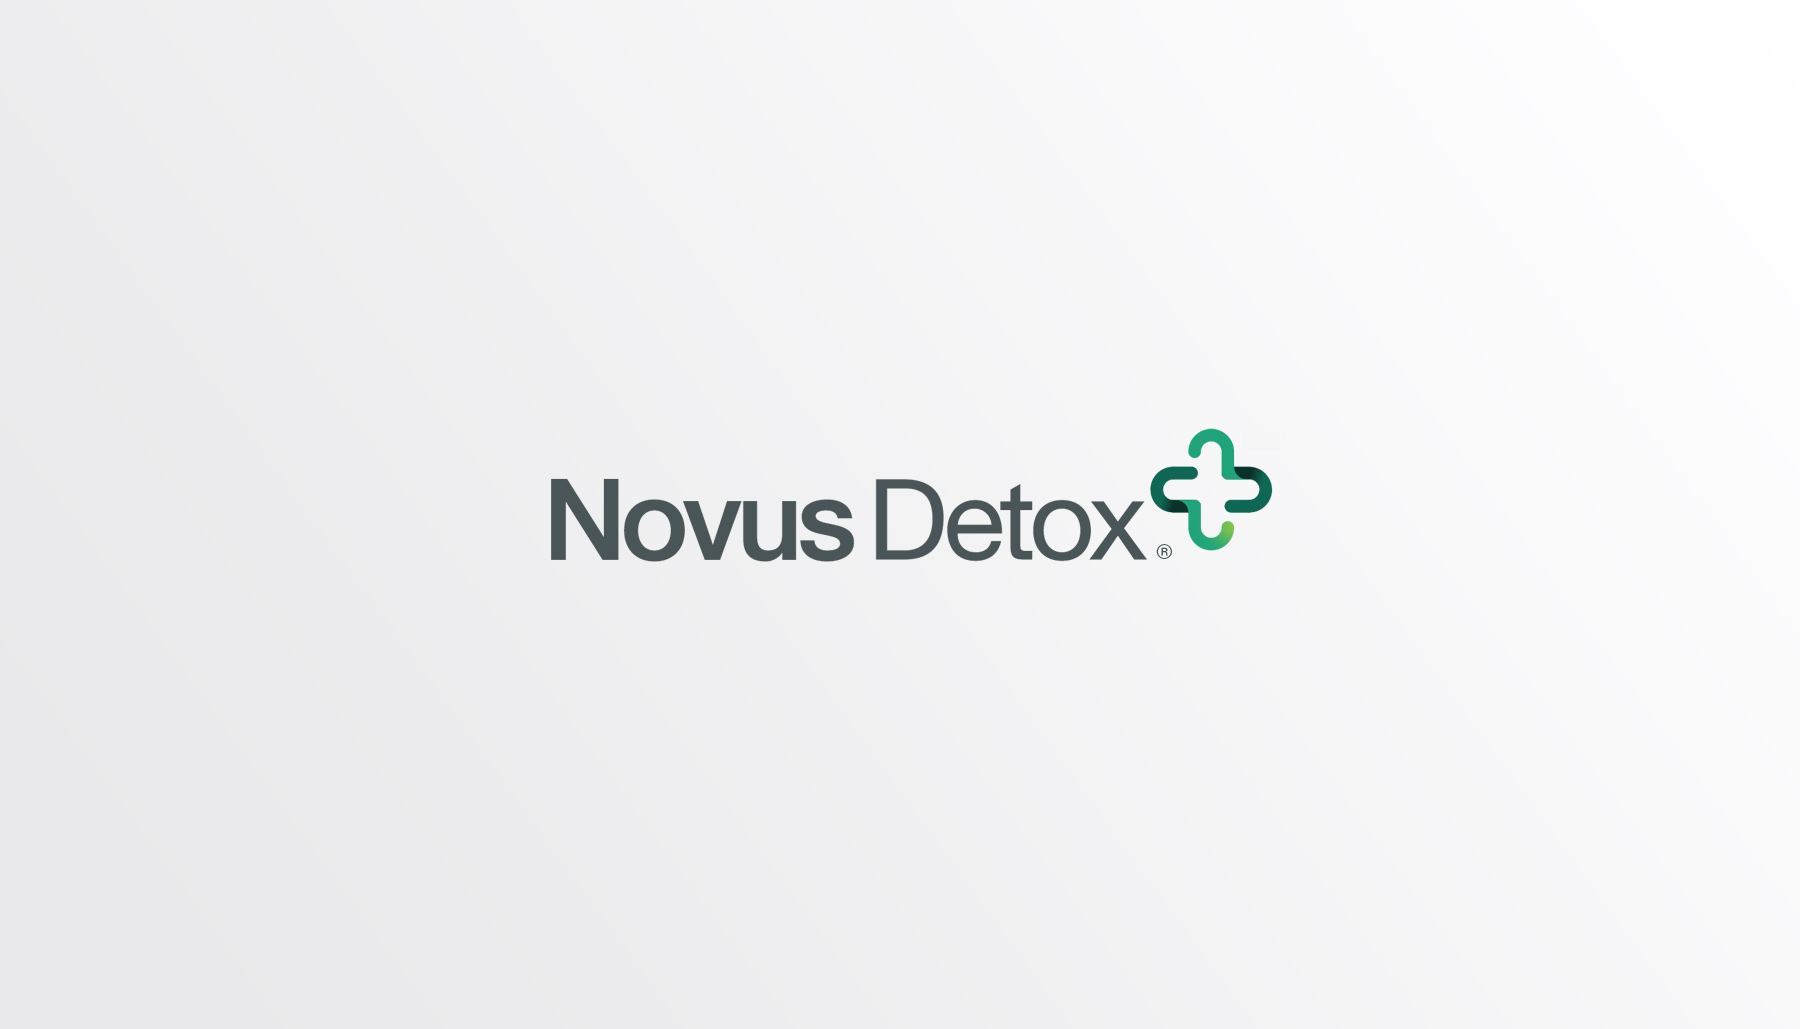 Novus Detox, Florida medical center branding, Tampa Palm Beach healthcare detox brand